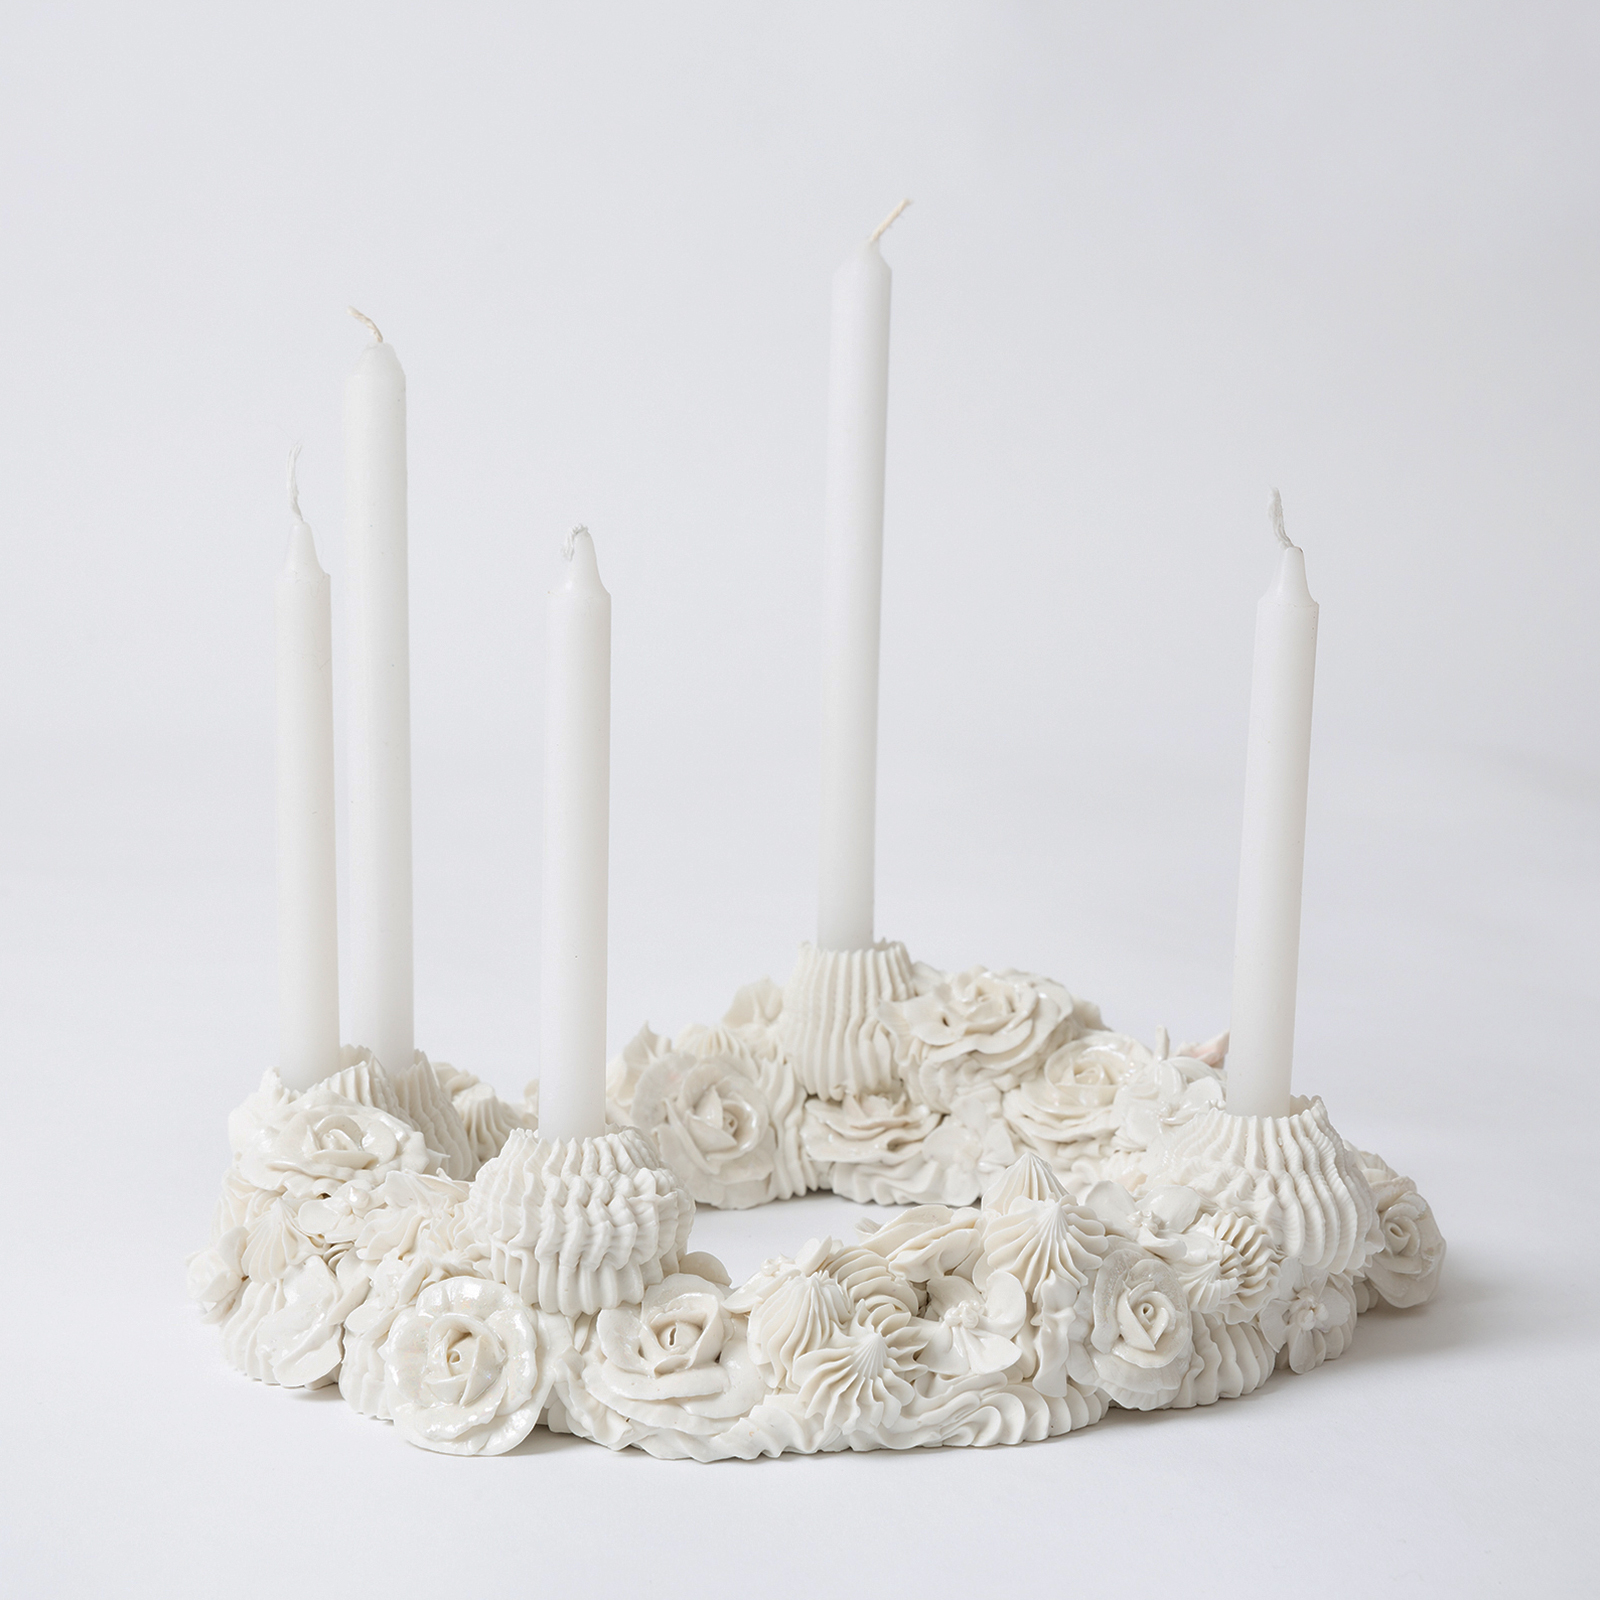 White Piped Rose Ring With Five Candlesticks In Porcelain By Ebony Russell Hero